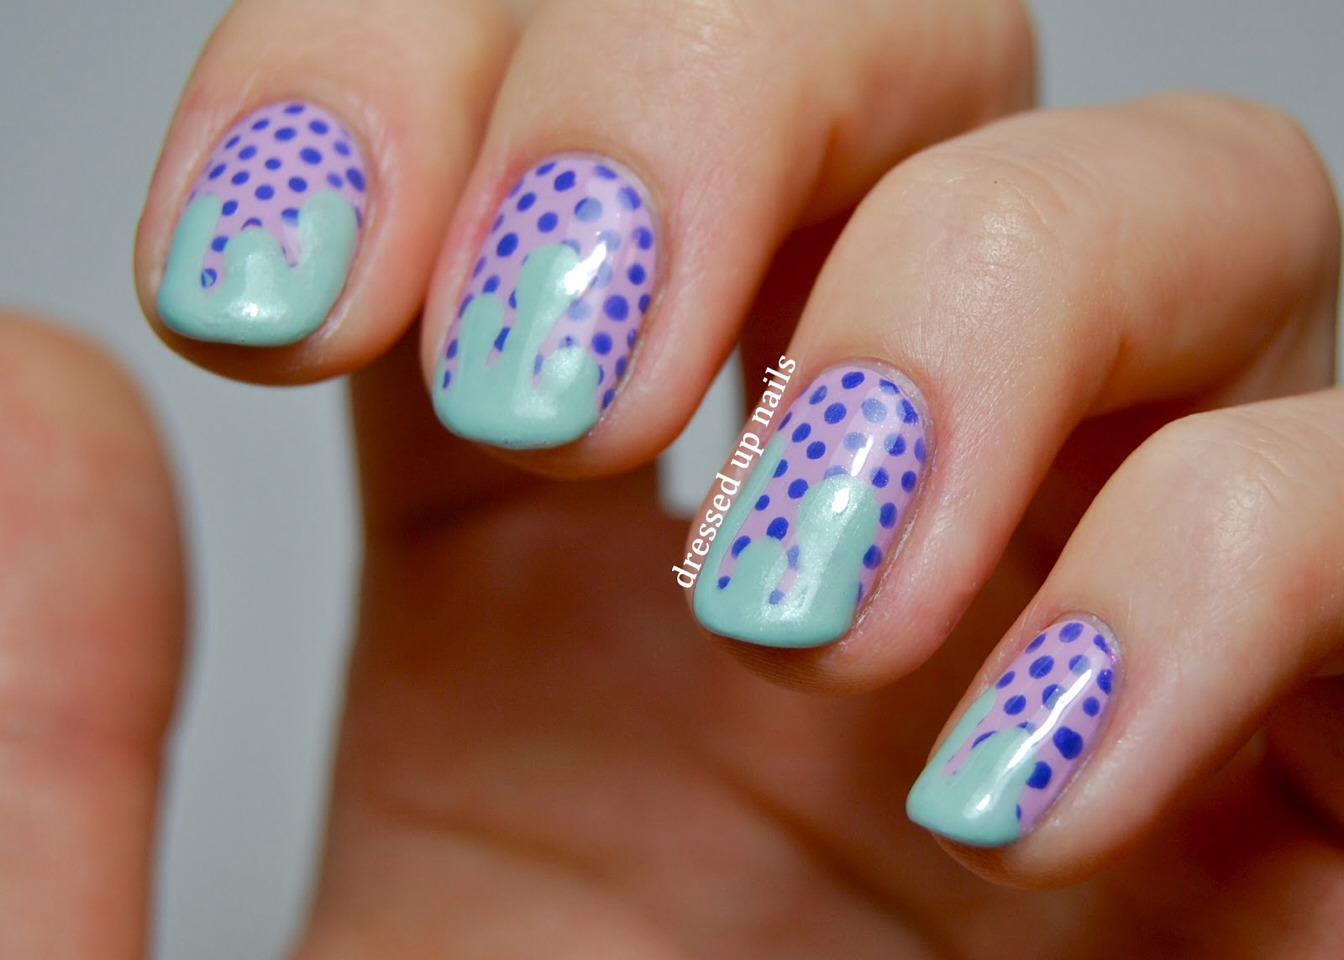 Or paint purple then put blue dots then add with a Bobby pin for a smudged teal/mint green look.